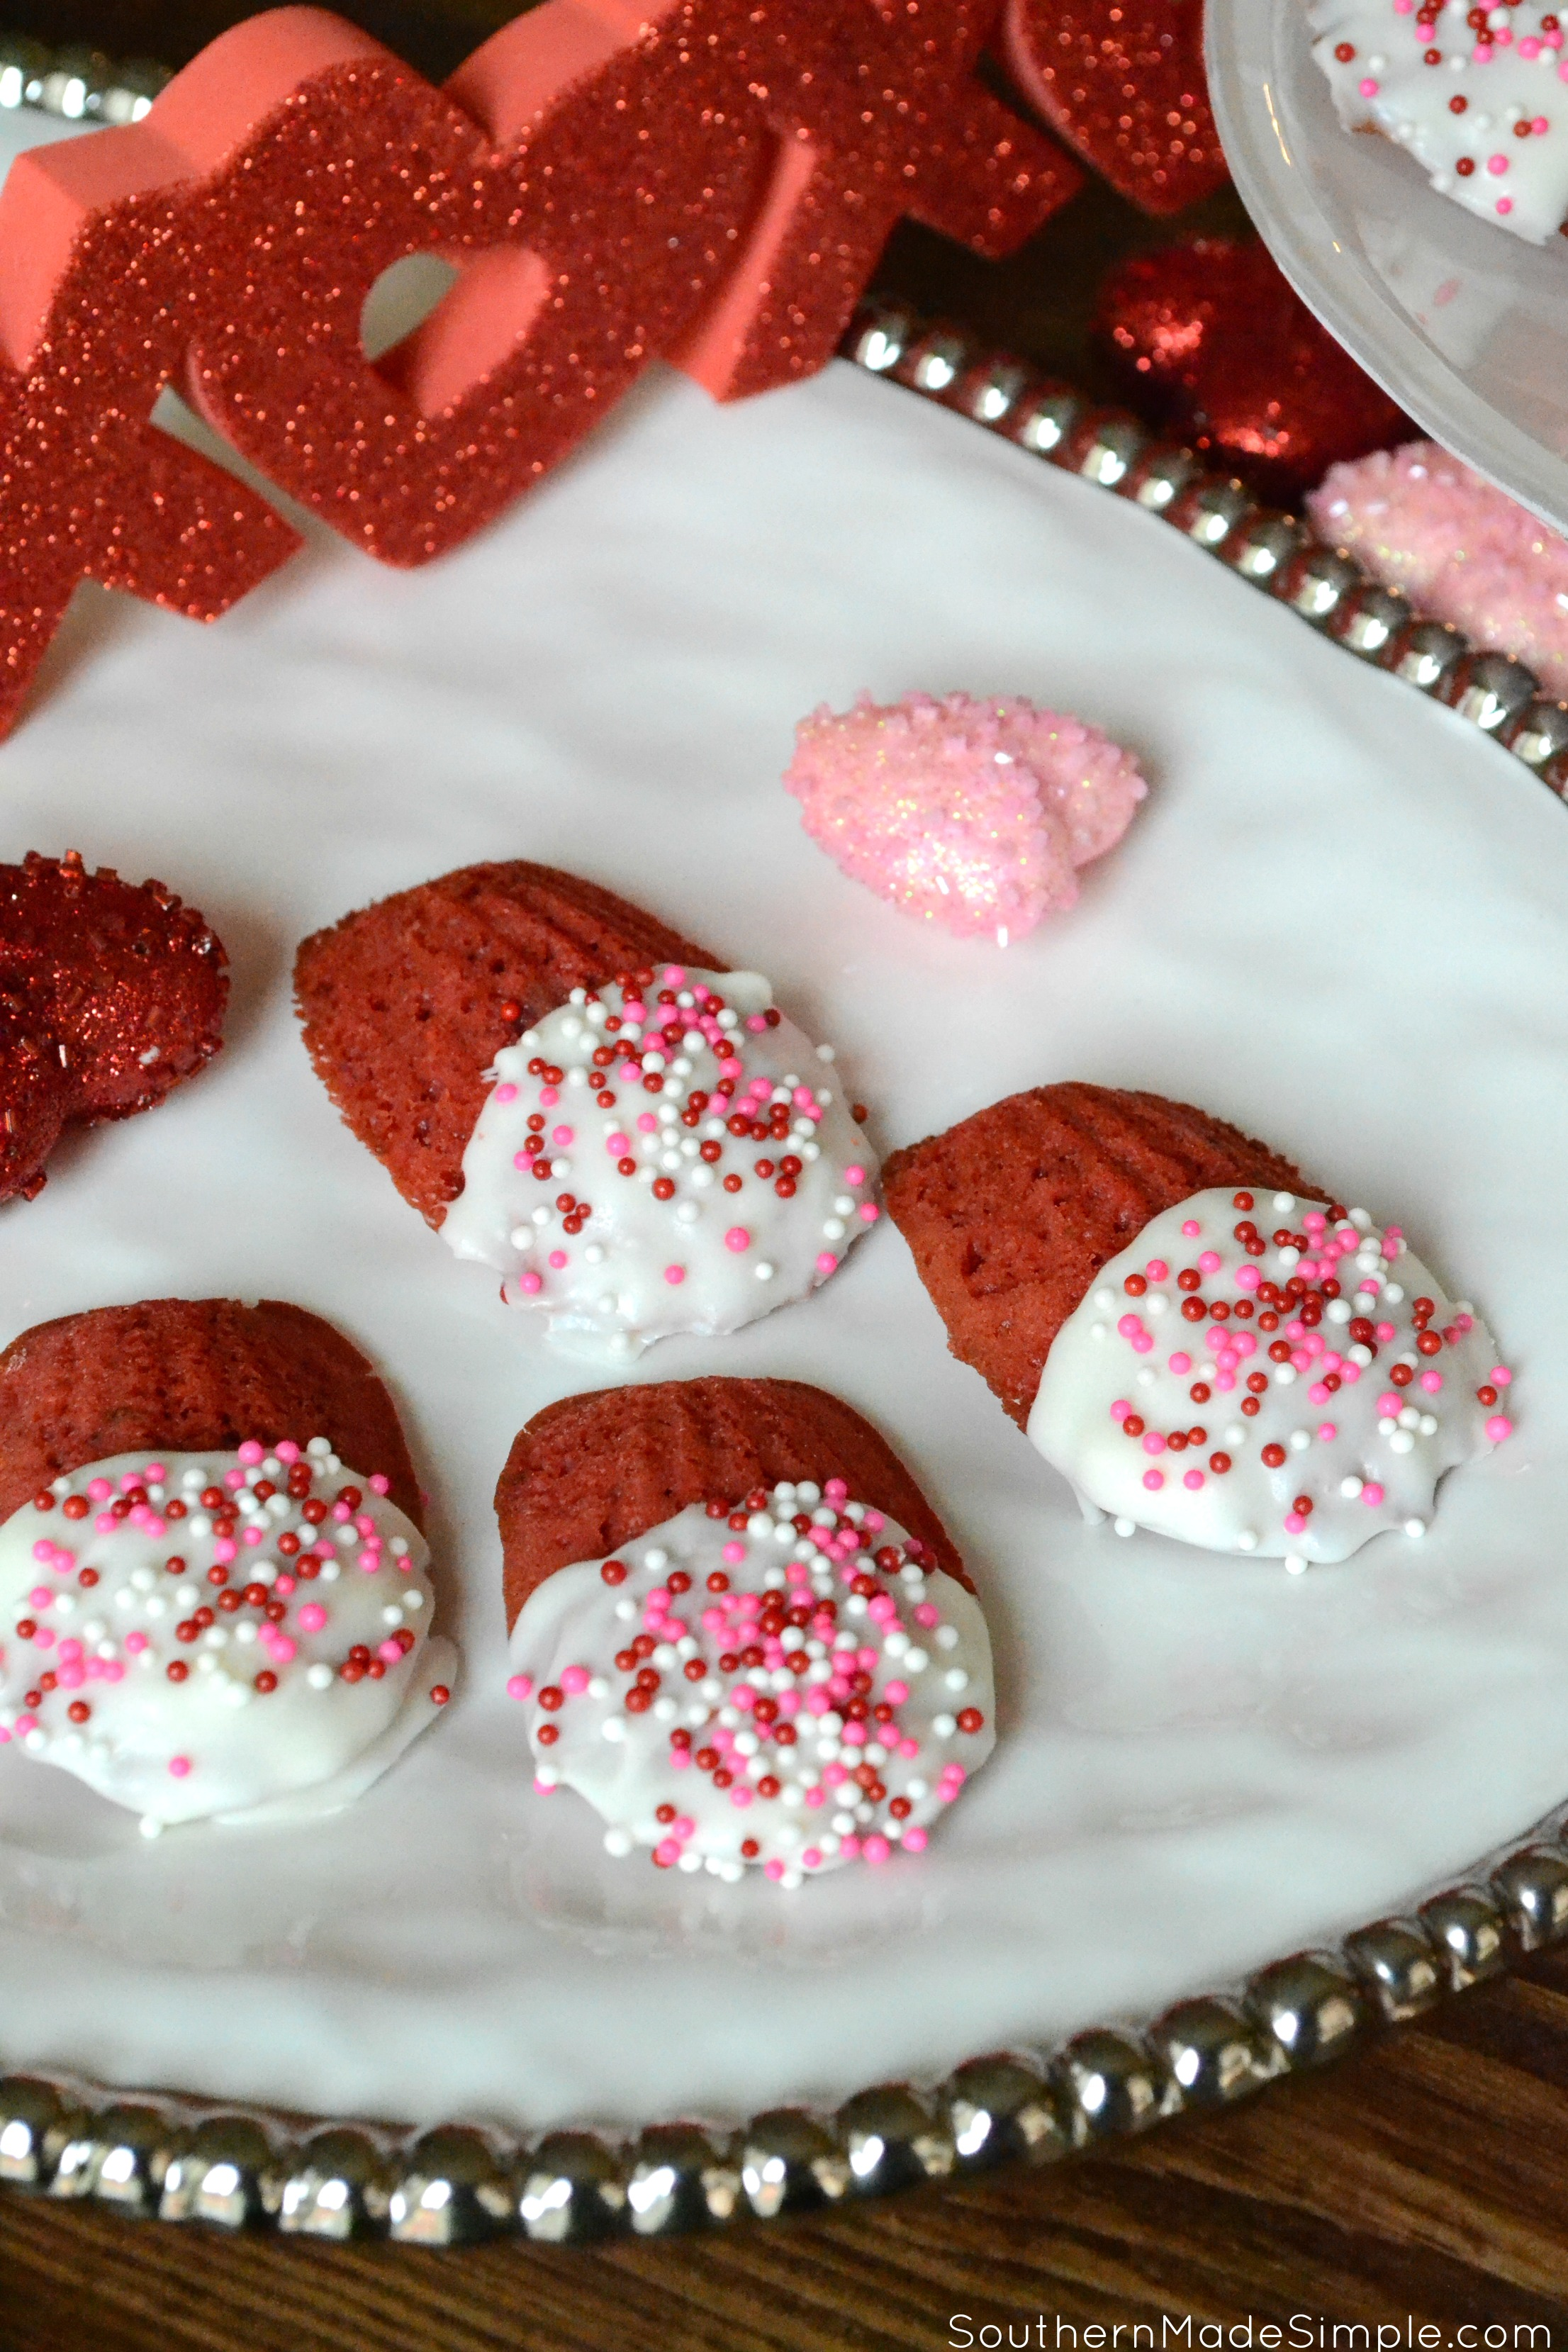 Give your loved ones an extra bite of sweetness with these delicious White Chocolate Dipped Strawberry Madeleines - made with REAL strawberries!